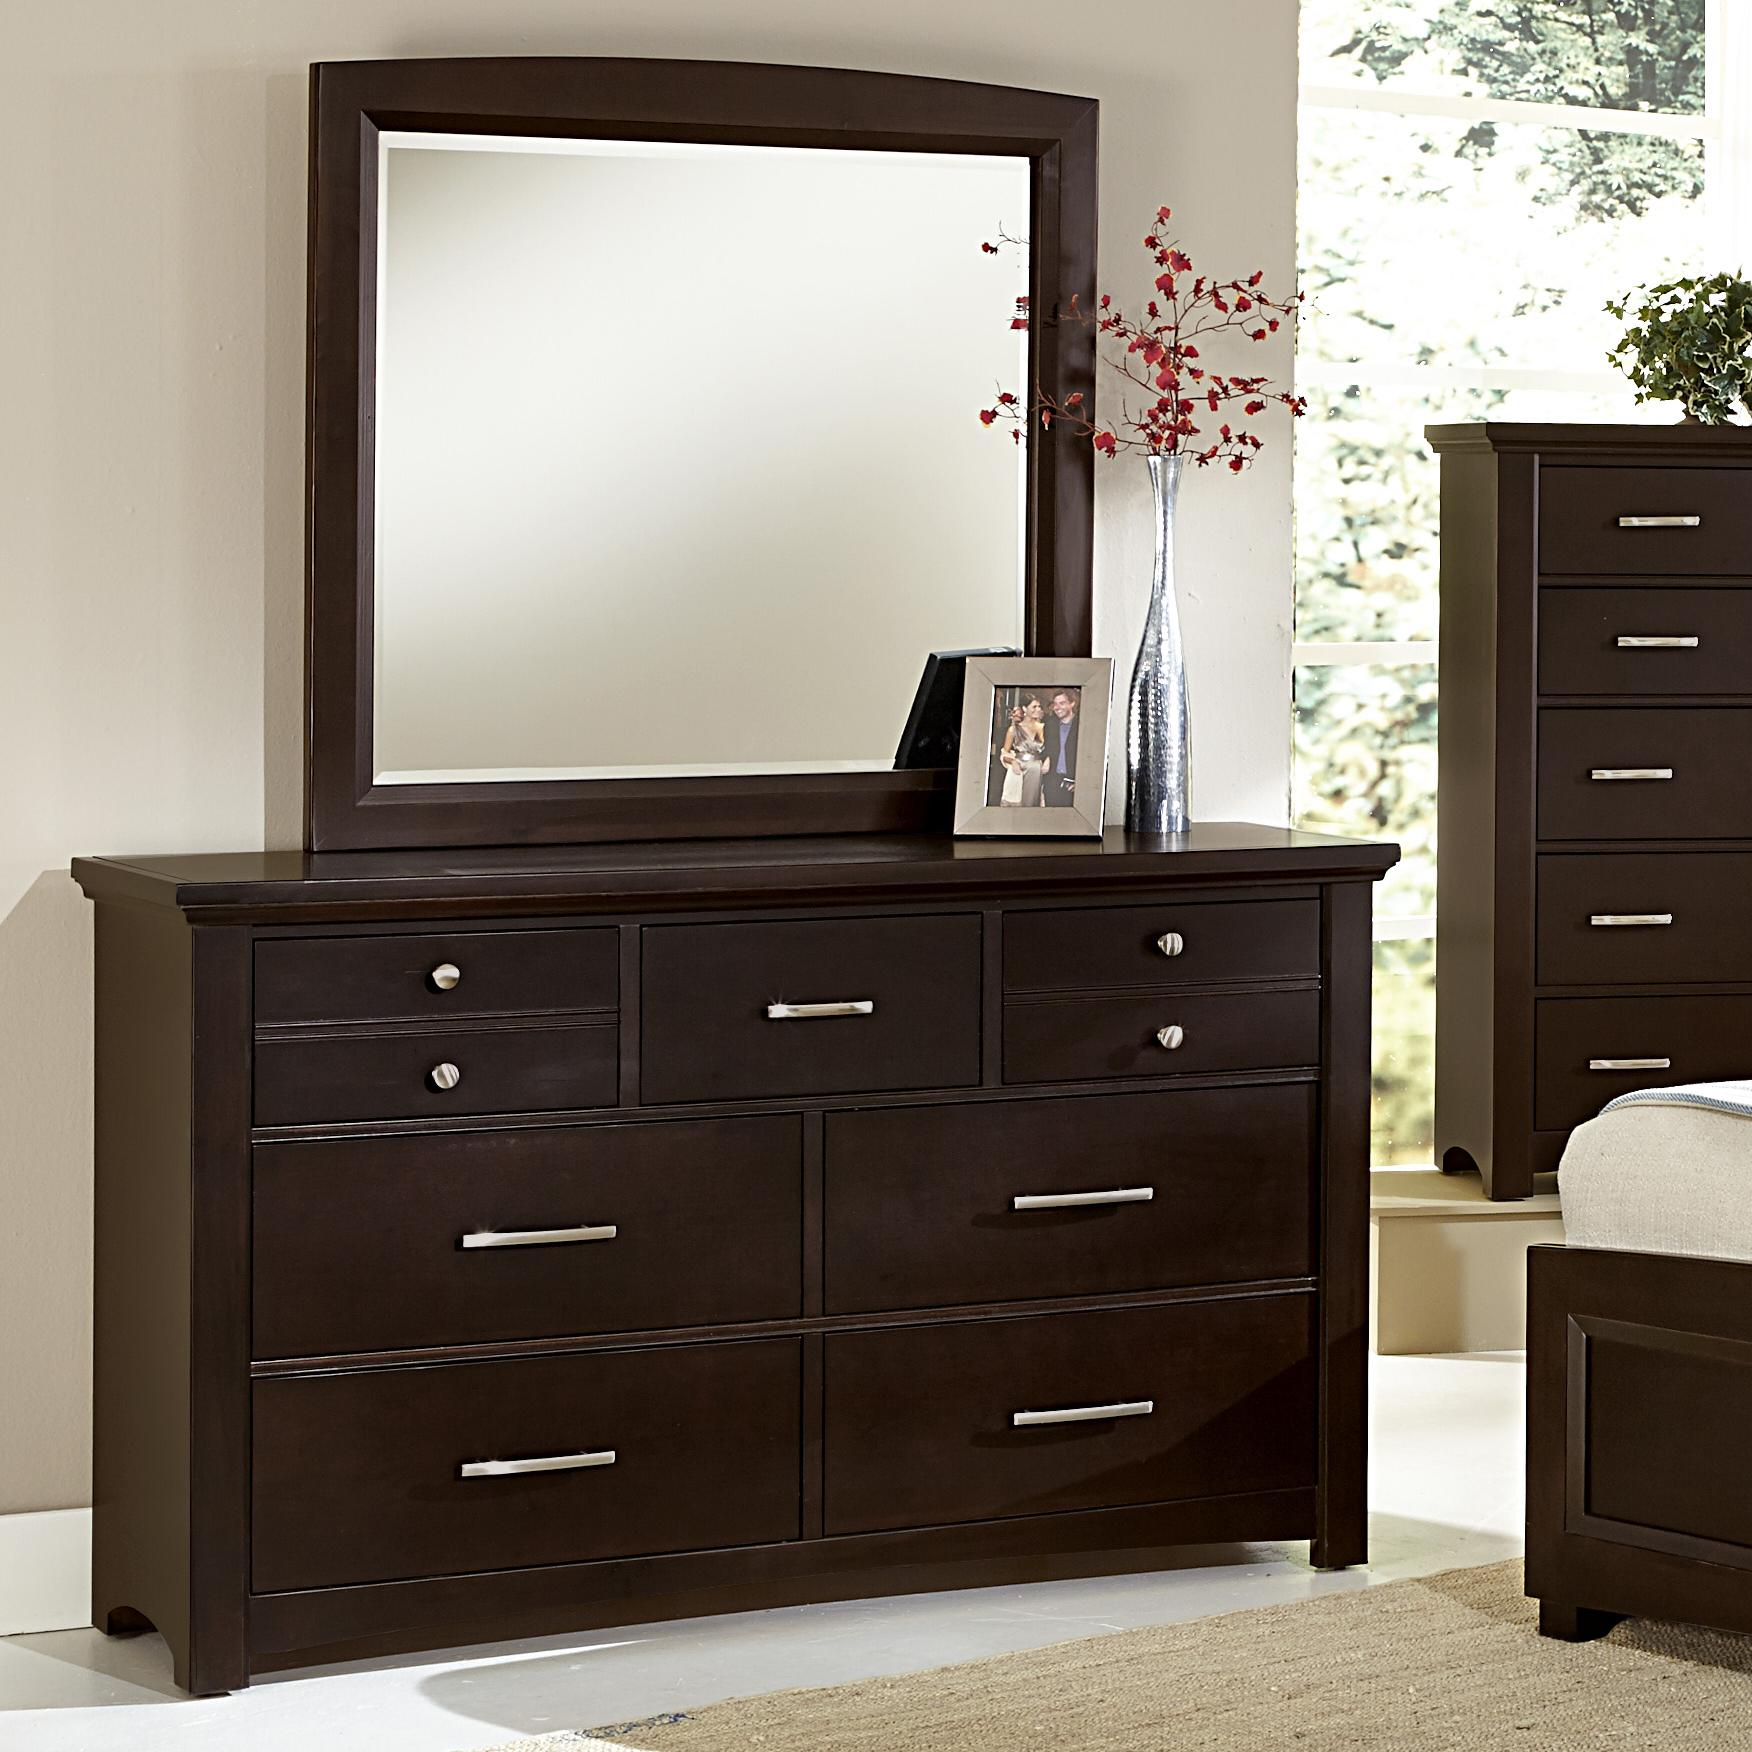 Vaughan Bassett Transitions Dresser & Landscape Mirror - Item Number: BB67-002+446